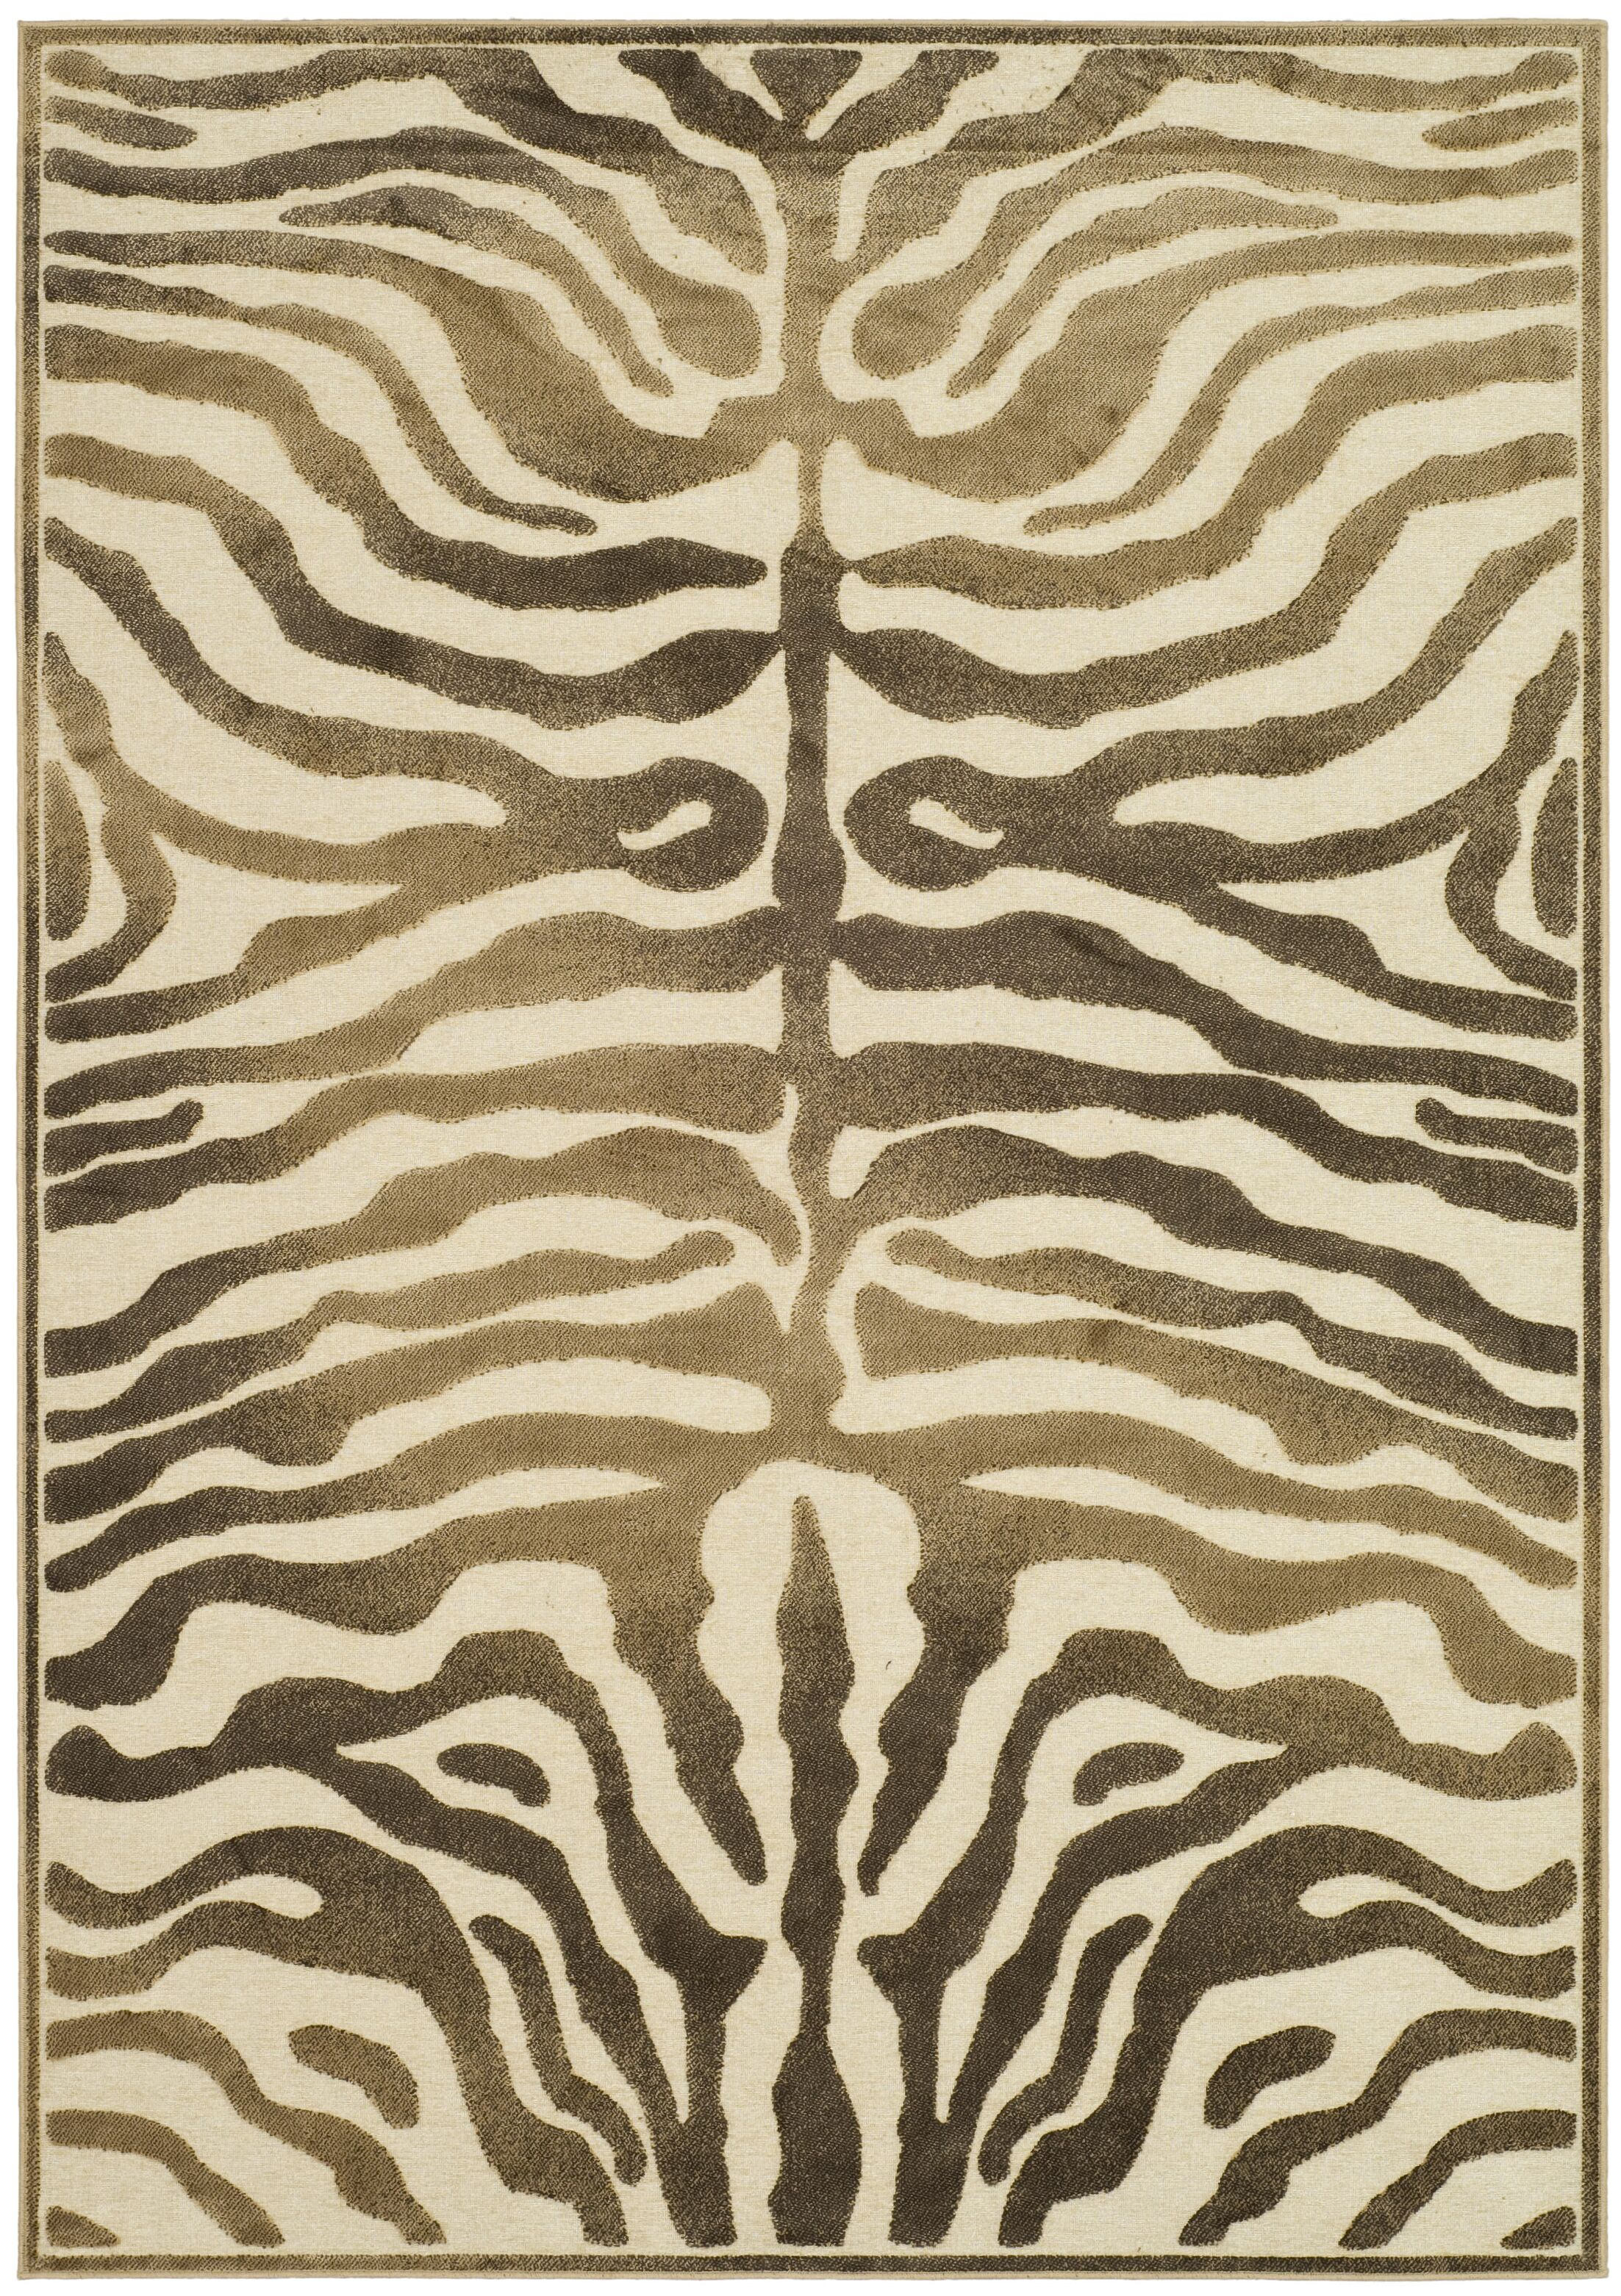 Linden Zebra Brown Area Rug Rug Size: Rectangle 8' x 11'2